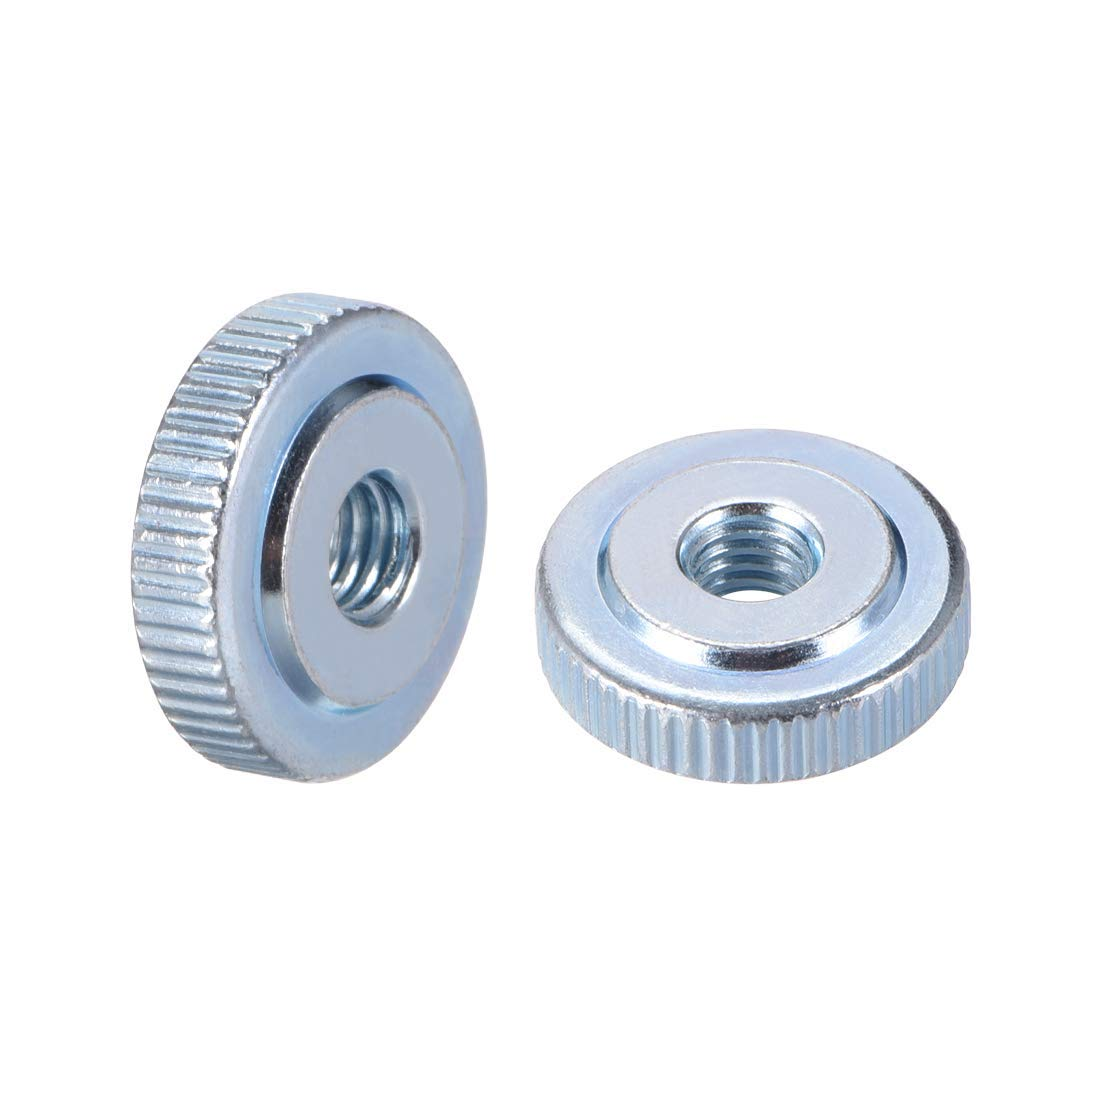 Pack of 10 ZCHXD Knurled Thumb Nuts Blue Zinc Plating M6 Female Threaded Thin Type